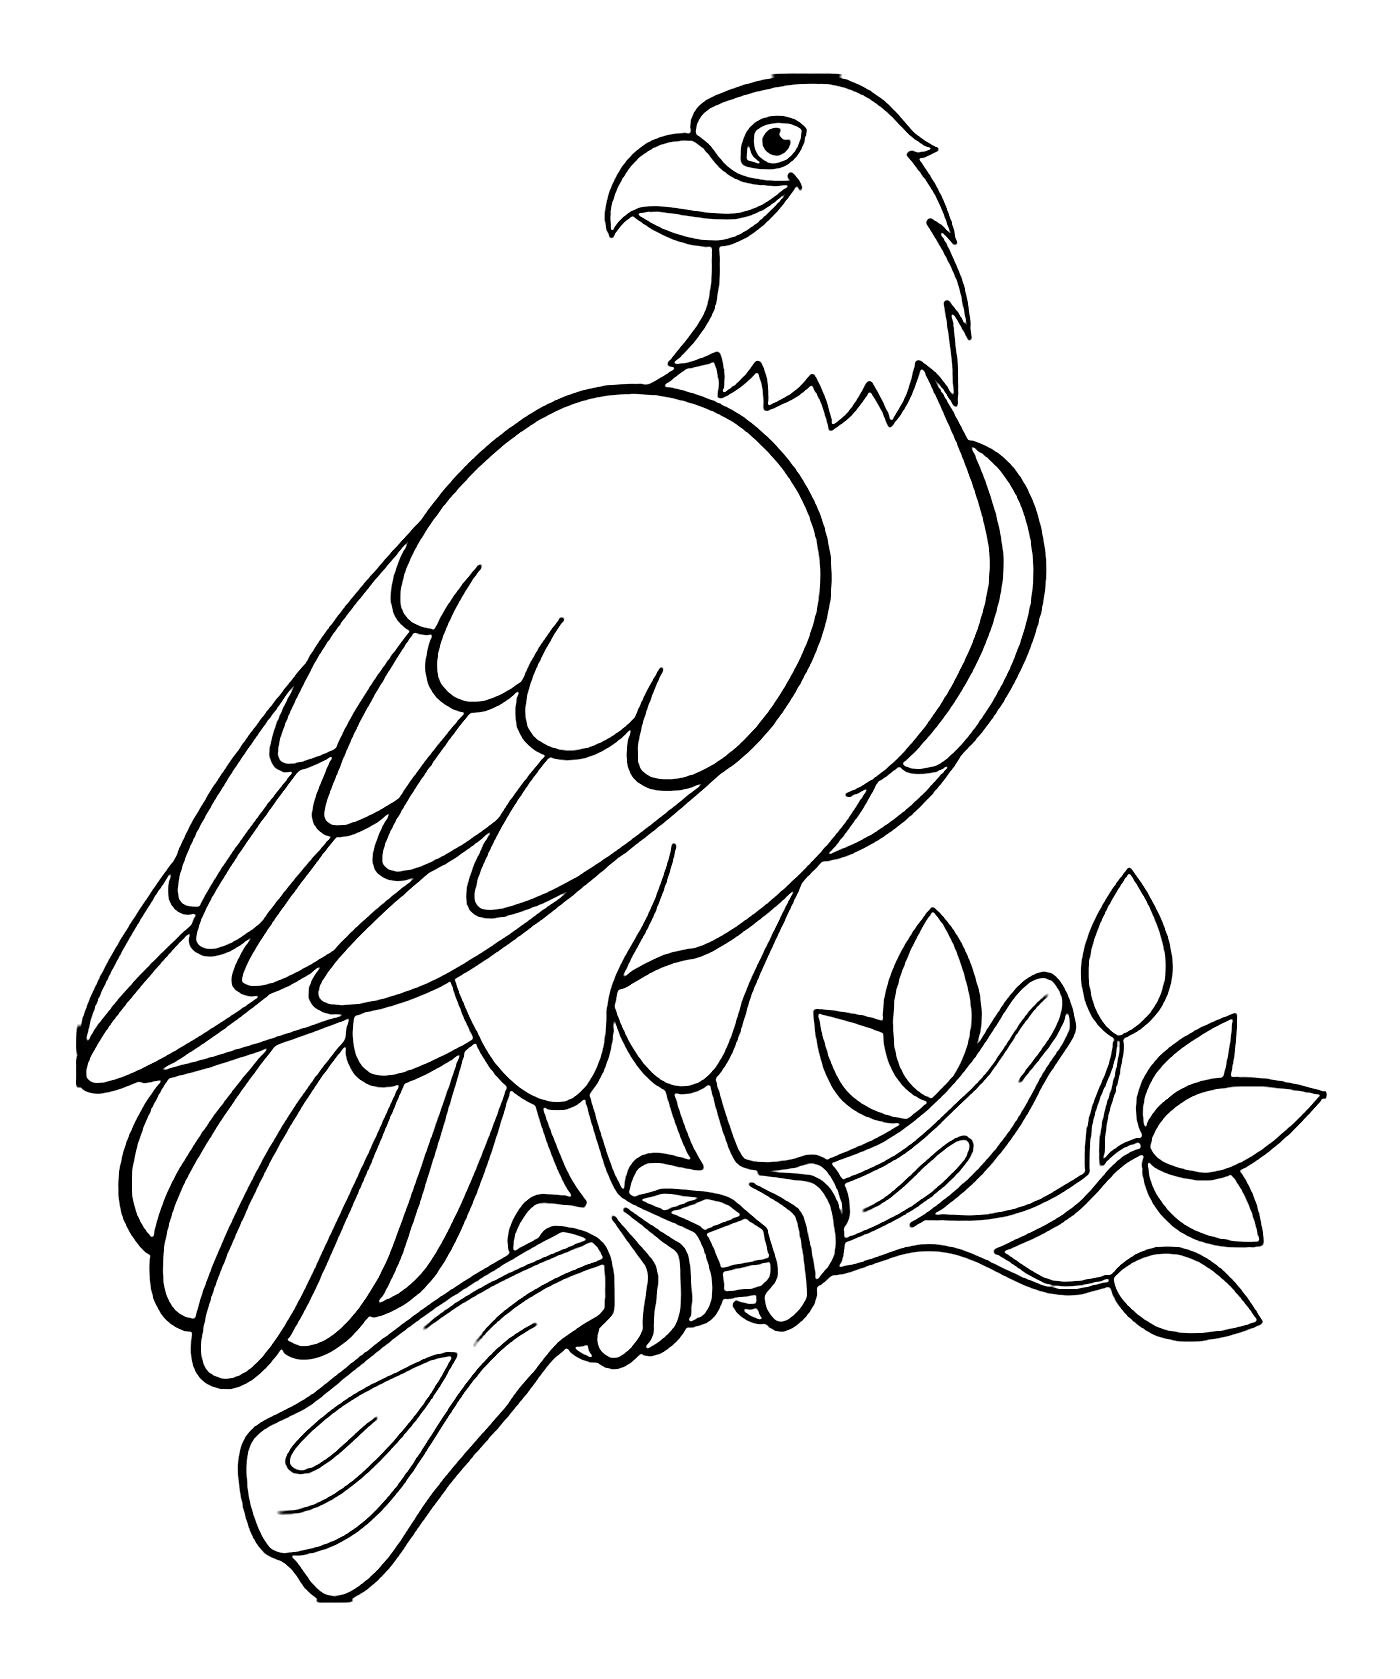 bird colouring pictures birds free to color for children birds kids coloring pages colouring bird pictures